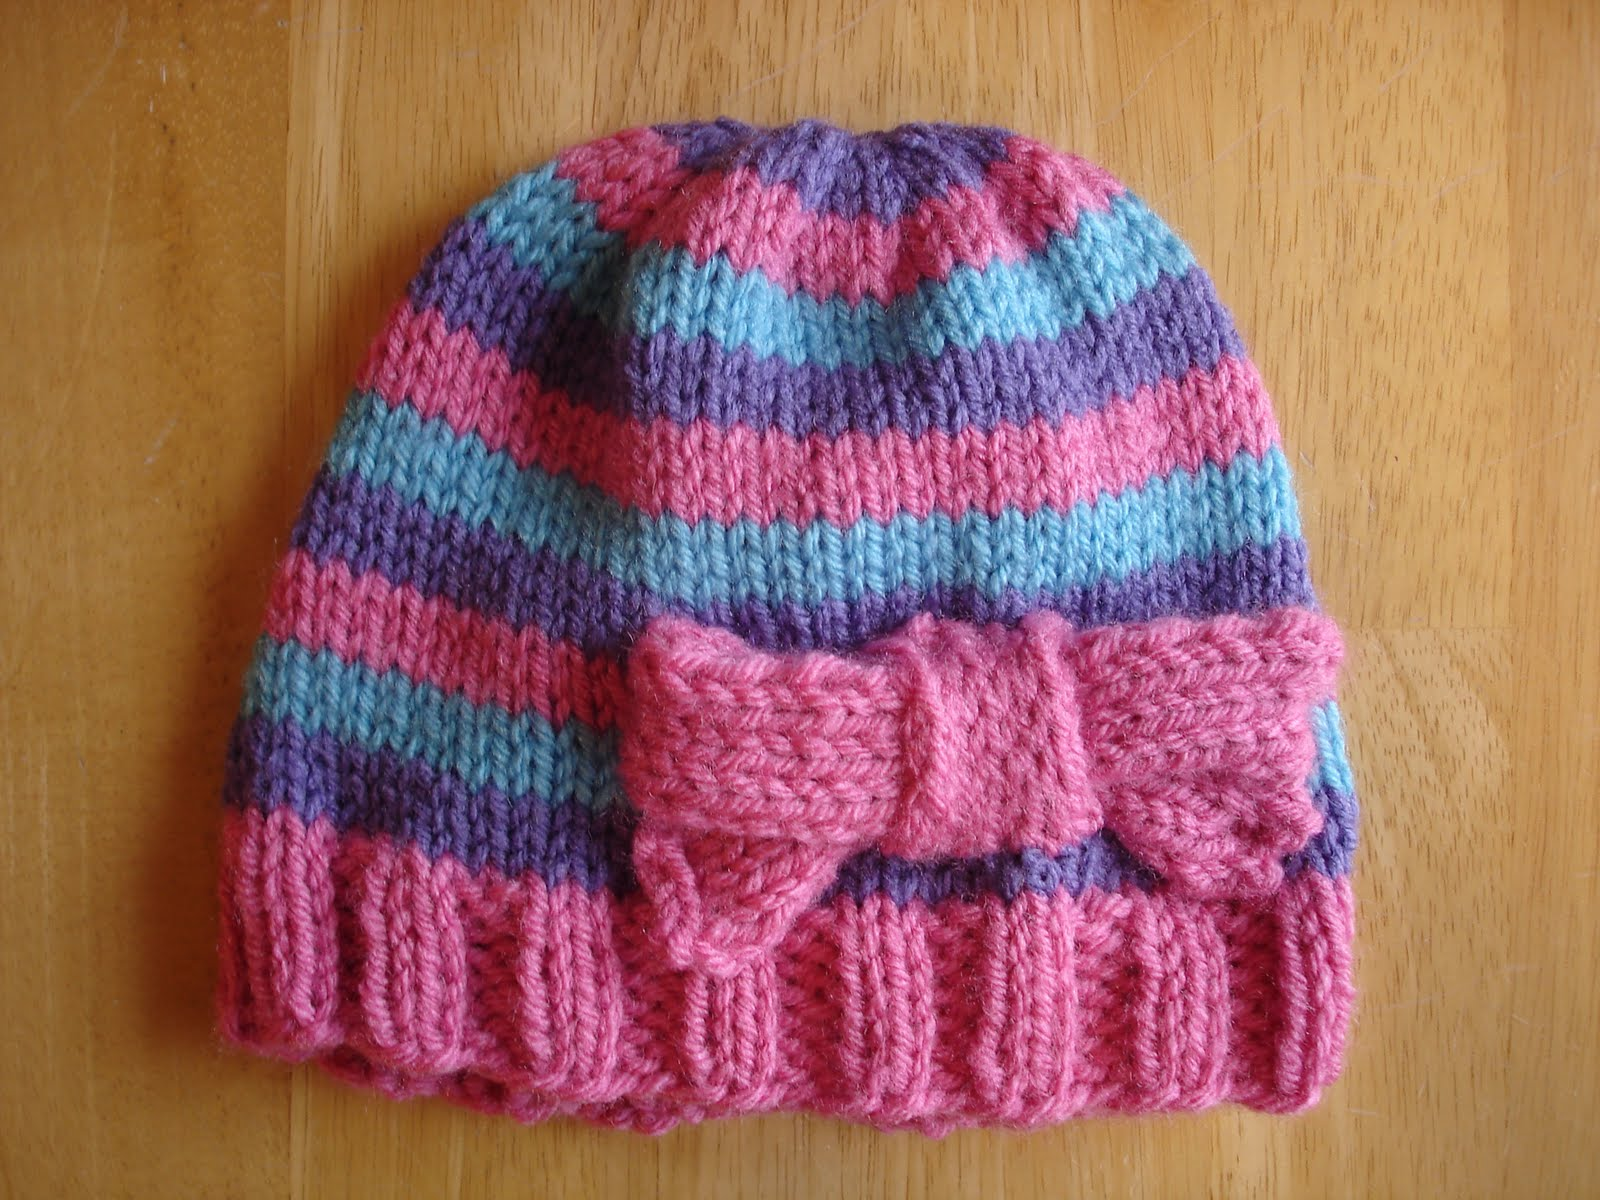 Easy Knitting Pattern For A Hat : Fiber Flux: Free Knitting Pattern...Super Pink Toddler Hat!